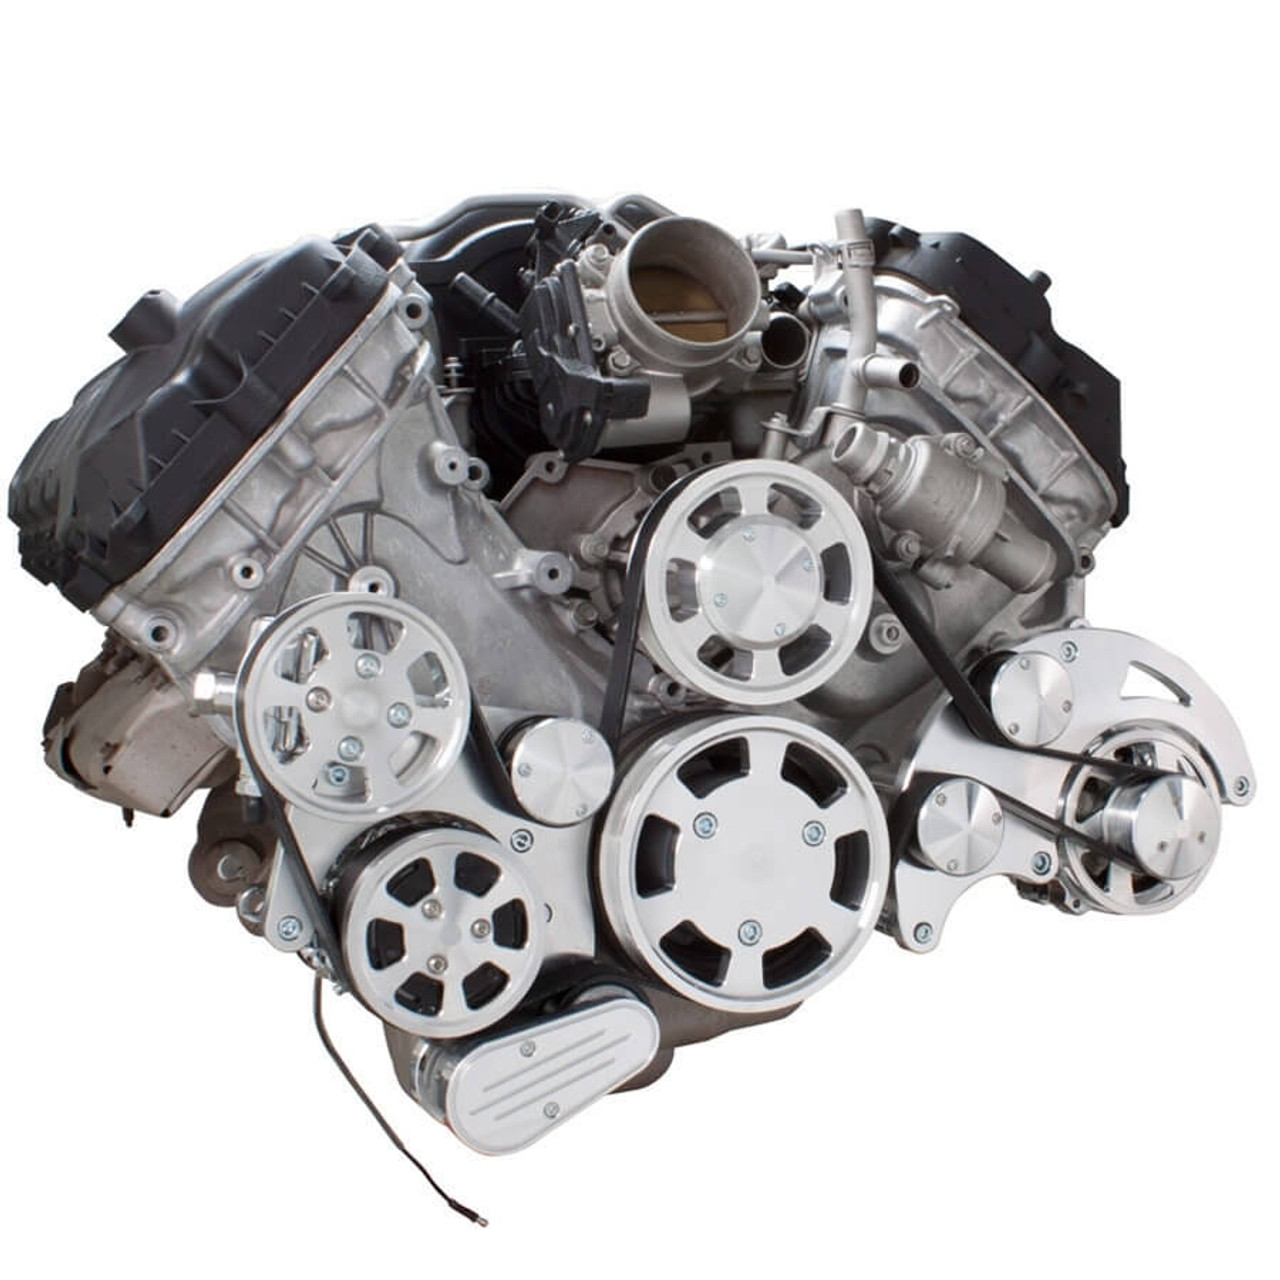 serpentine system for ford coyote 5 0 ac power steering alternator [ 900 x 900 Pixel ]